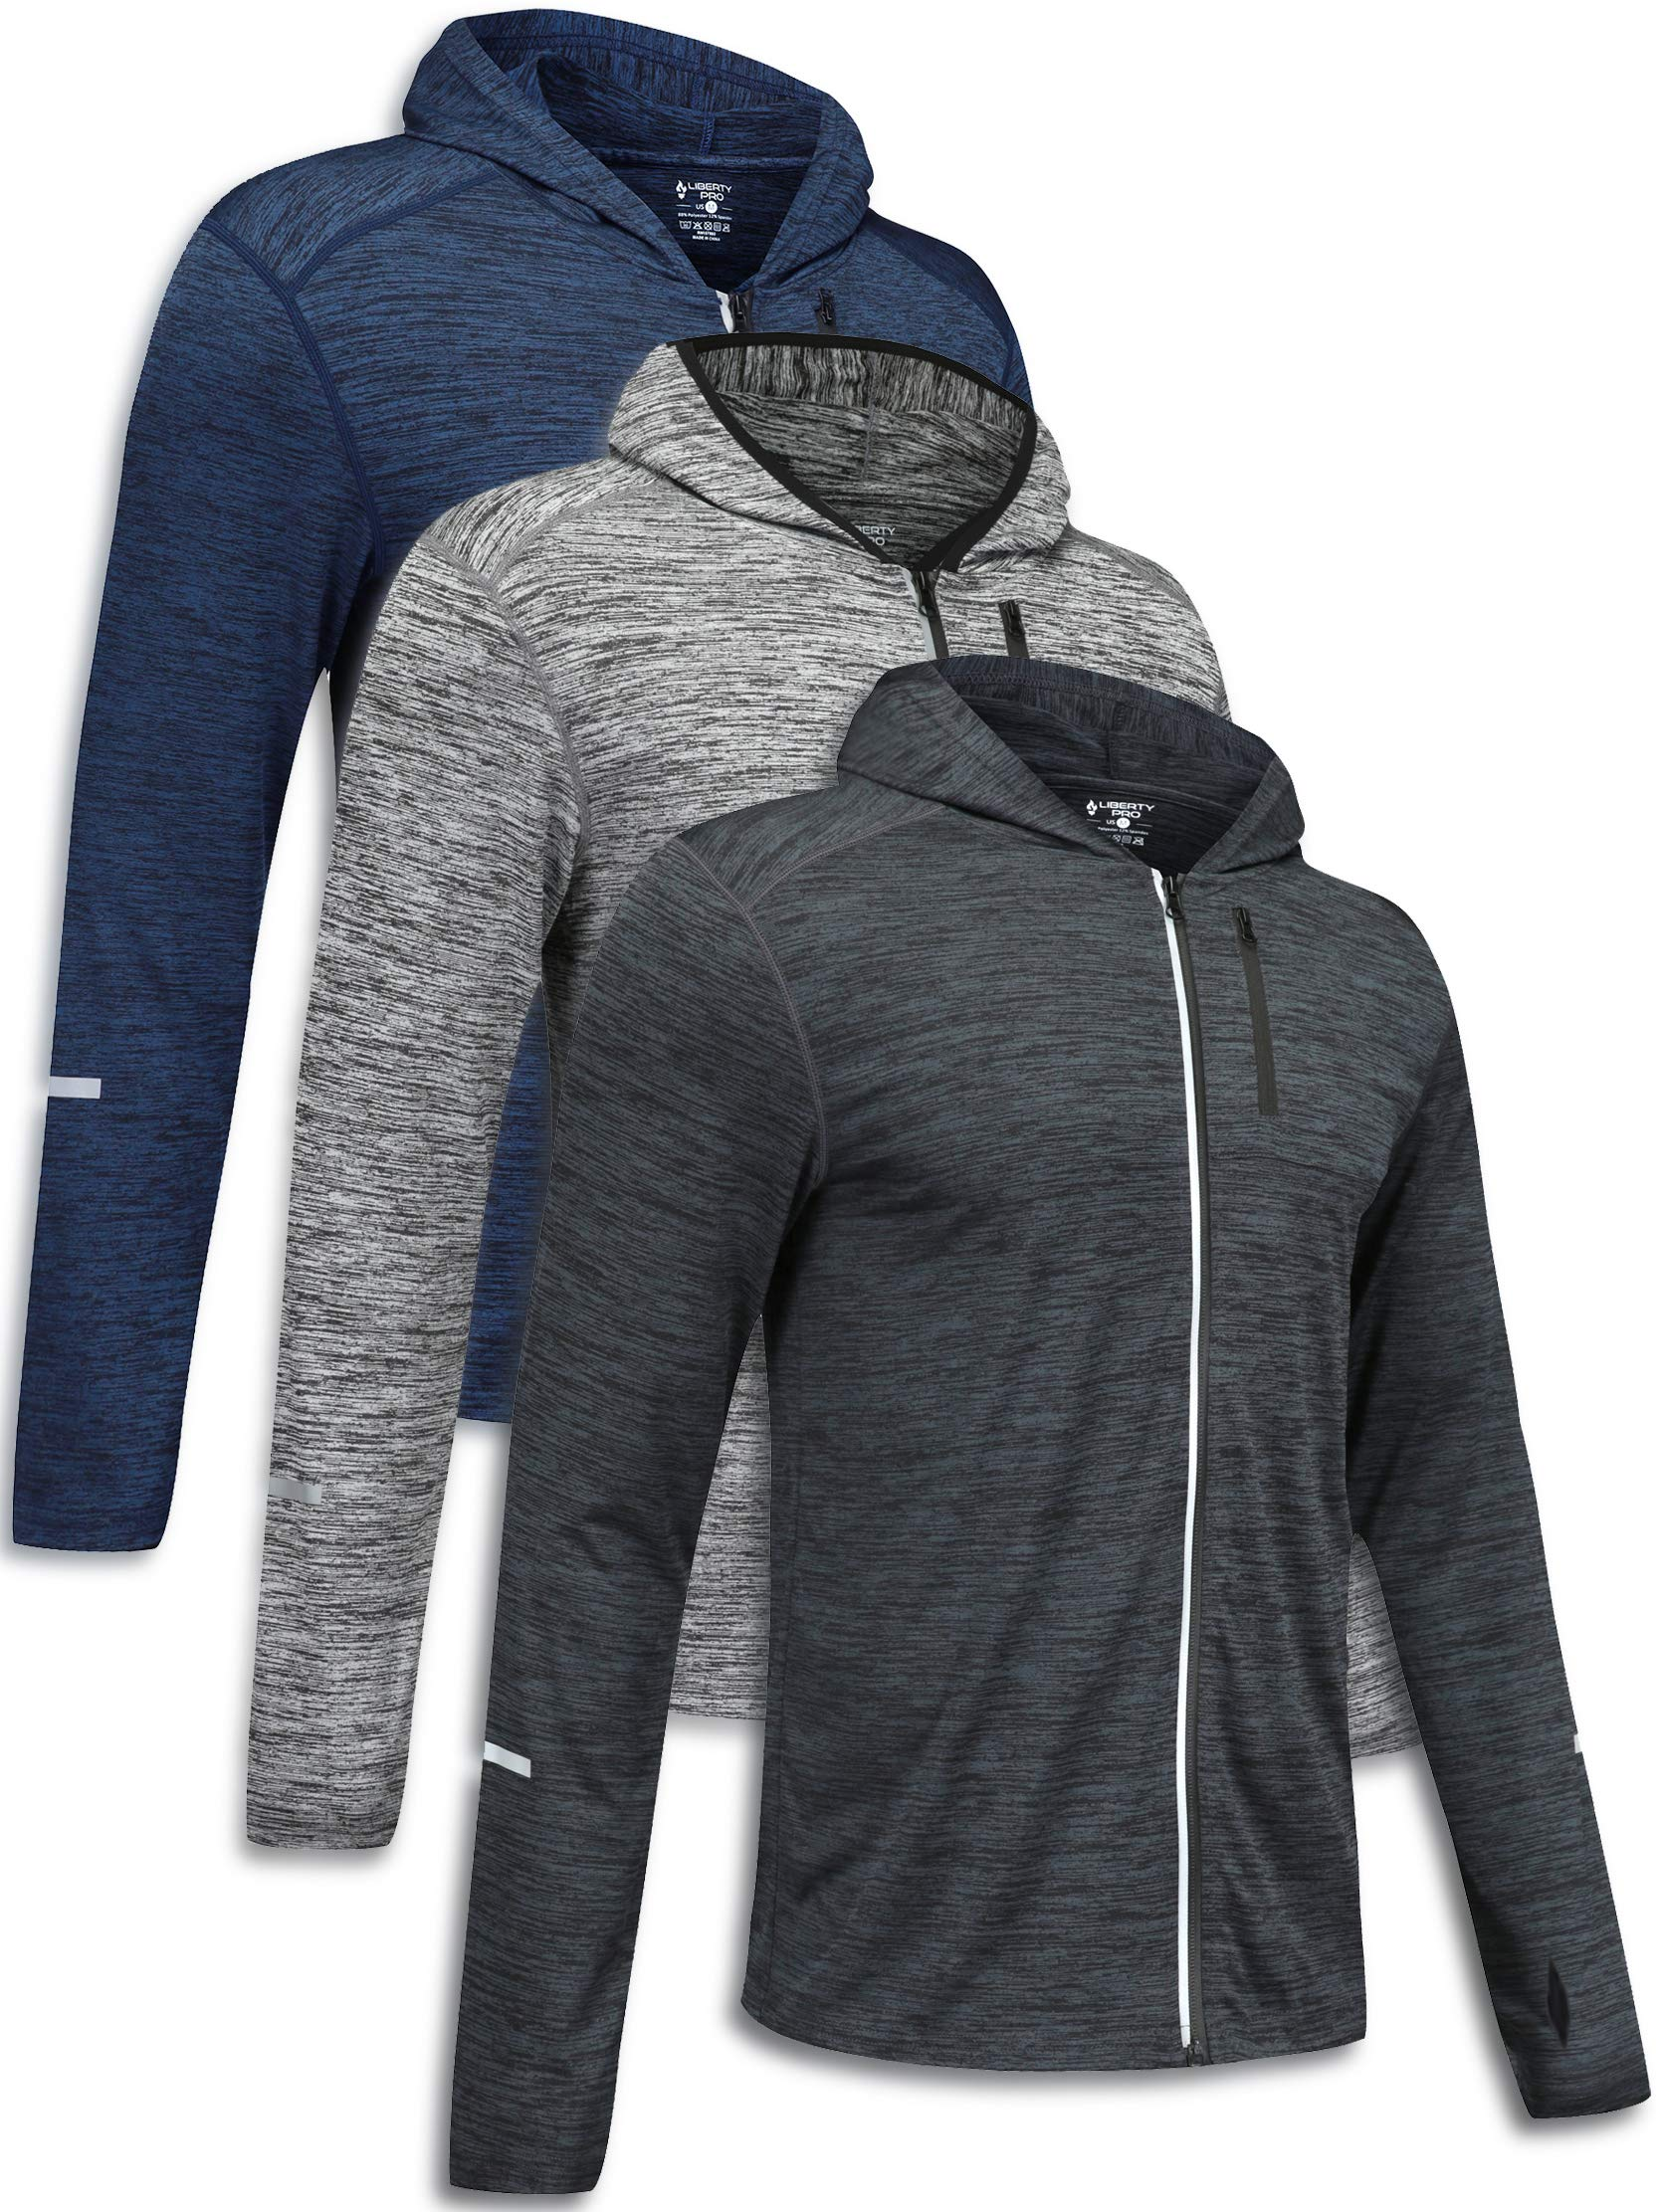 Best Buy 3 Pack Men's Long Sleeve Active Zipper Shirts Quick Dry Pullovers Athletic Running Cycling Gym Tops Bulk Bundle Reviews